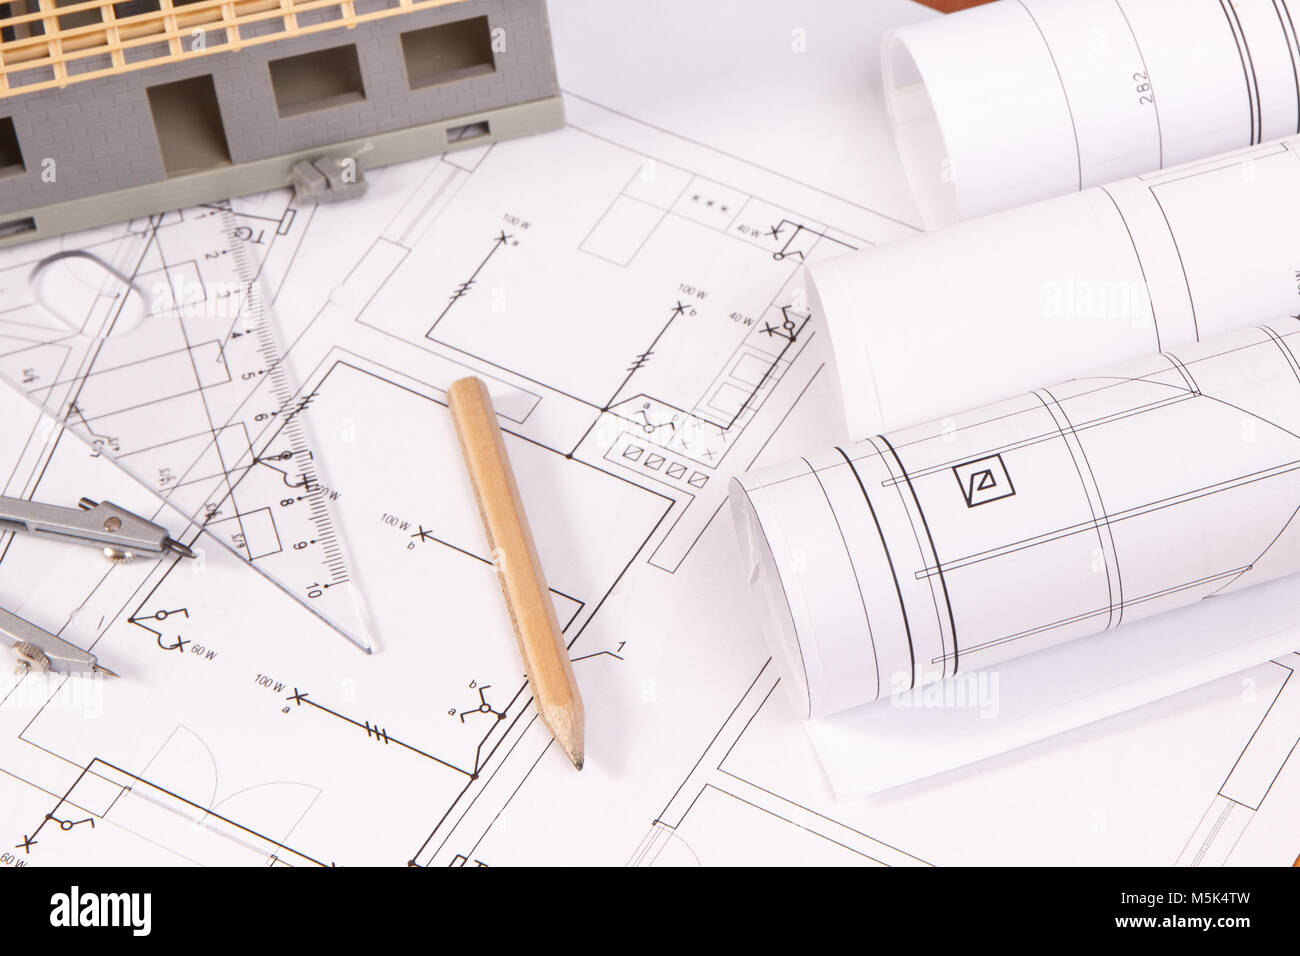 Electrical Diagrams Stock Photos Images Engineering Accessories For Use In Engineer Jobs And House Under Construction Concept Of